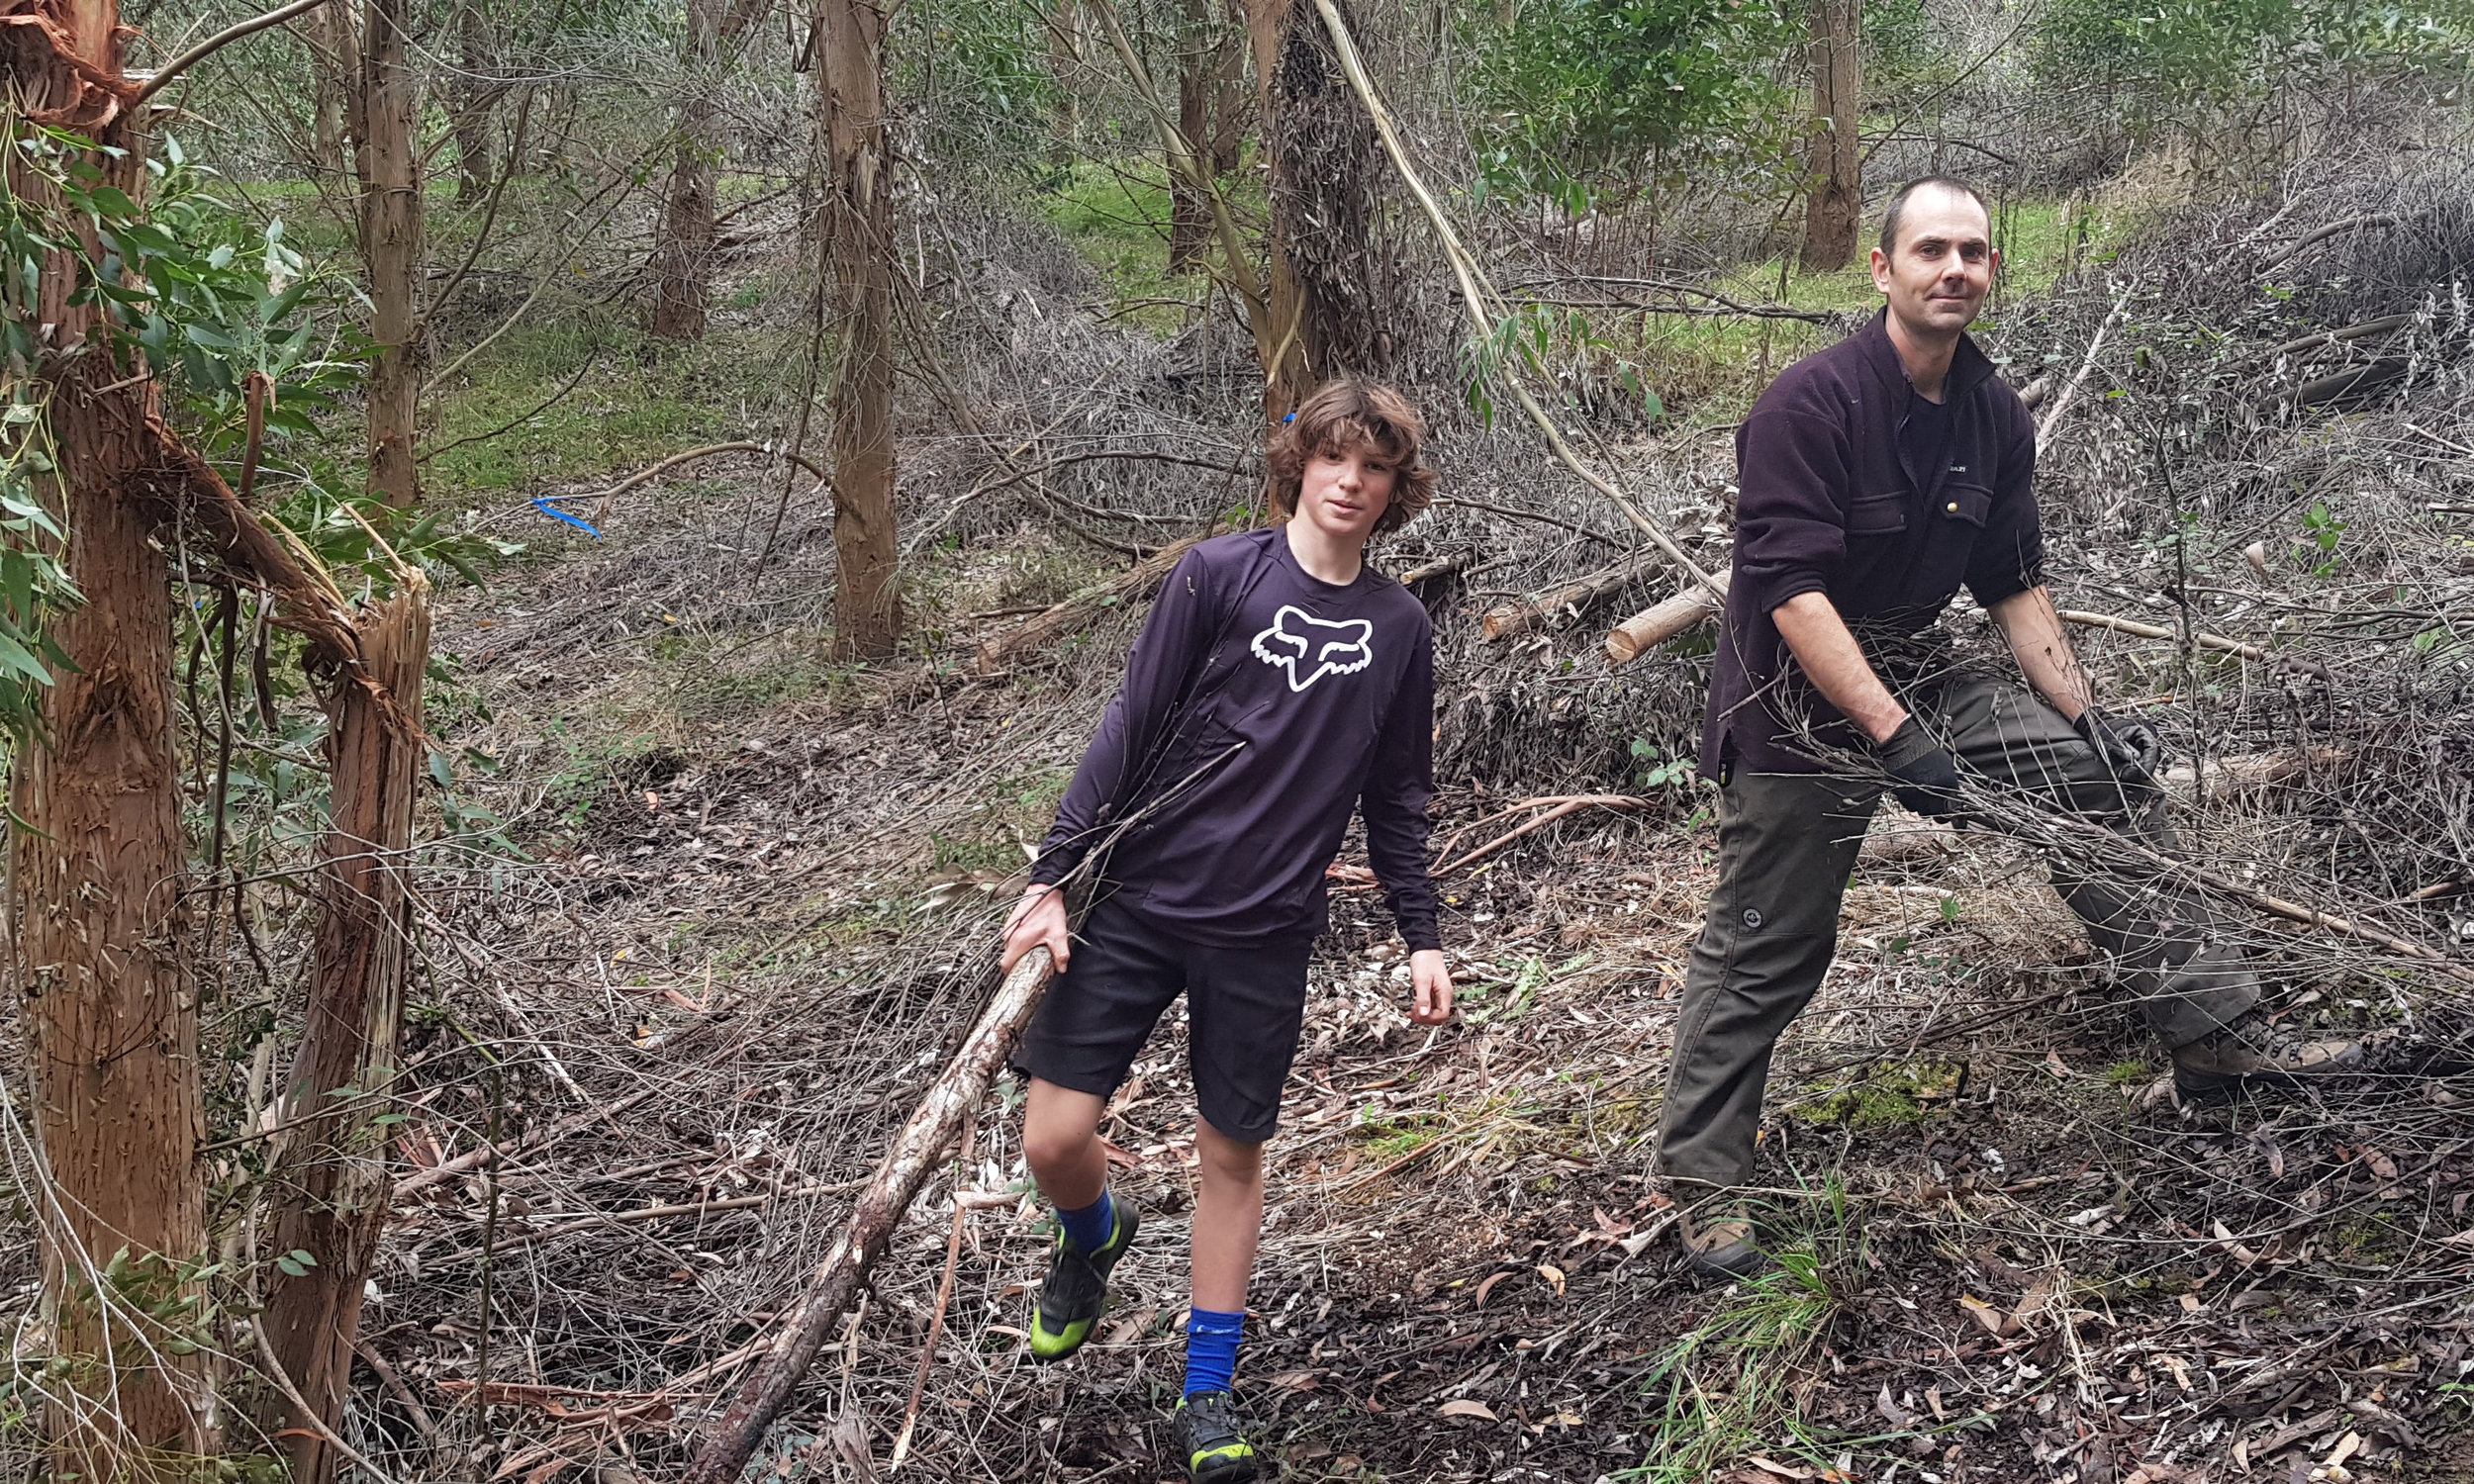 Clearing ground for new trails at the Gum Tree Mountain Bike Park